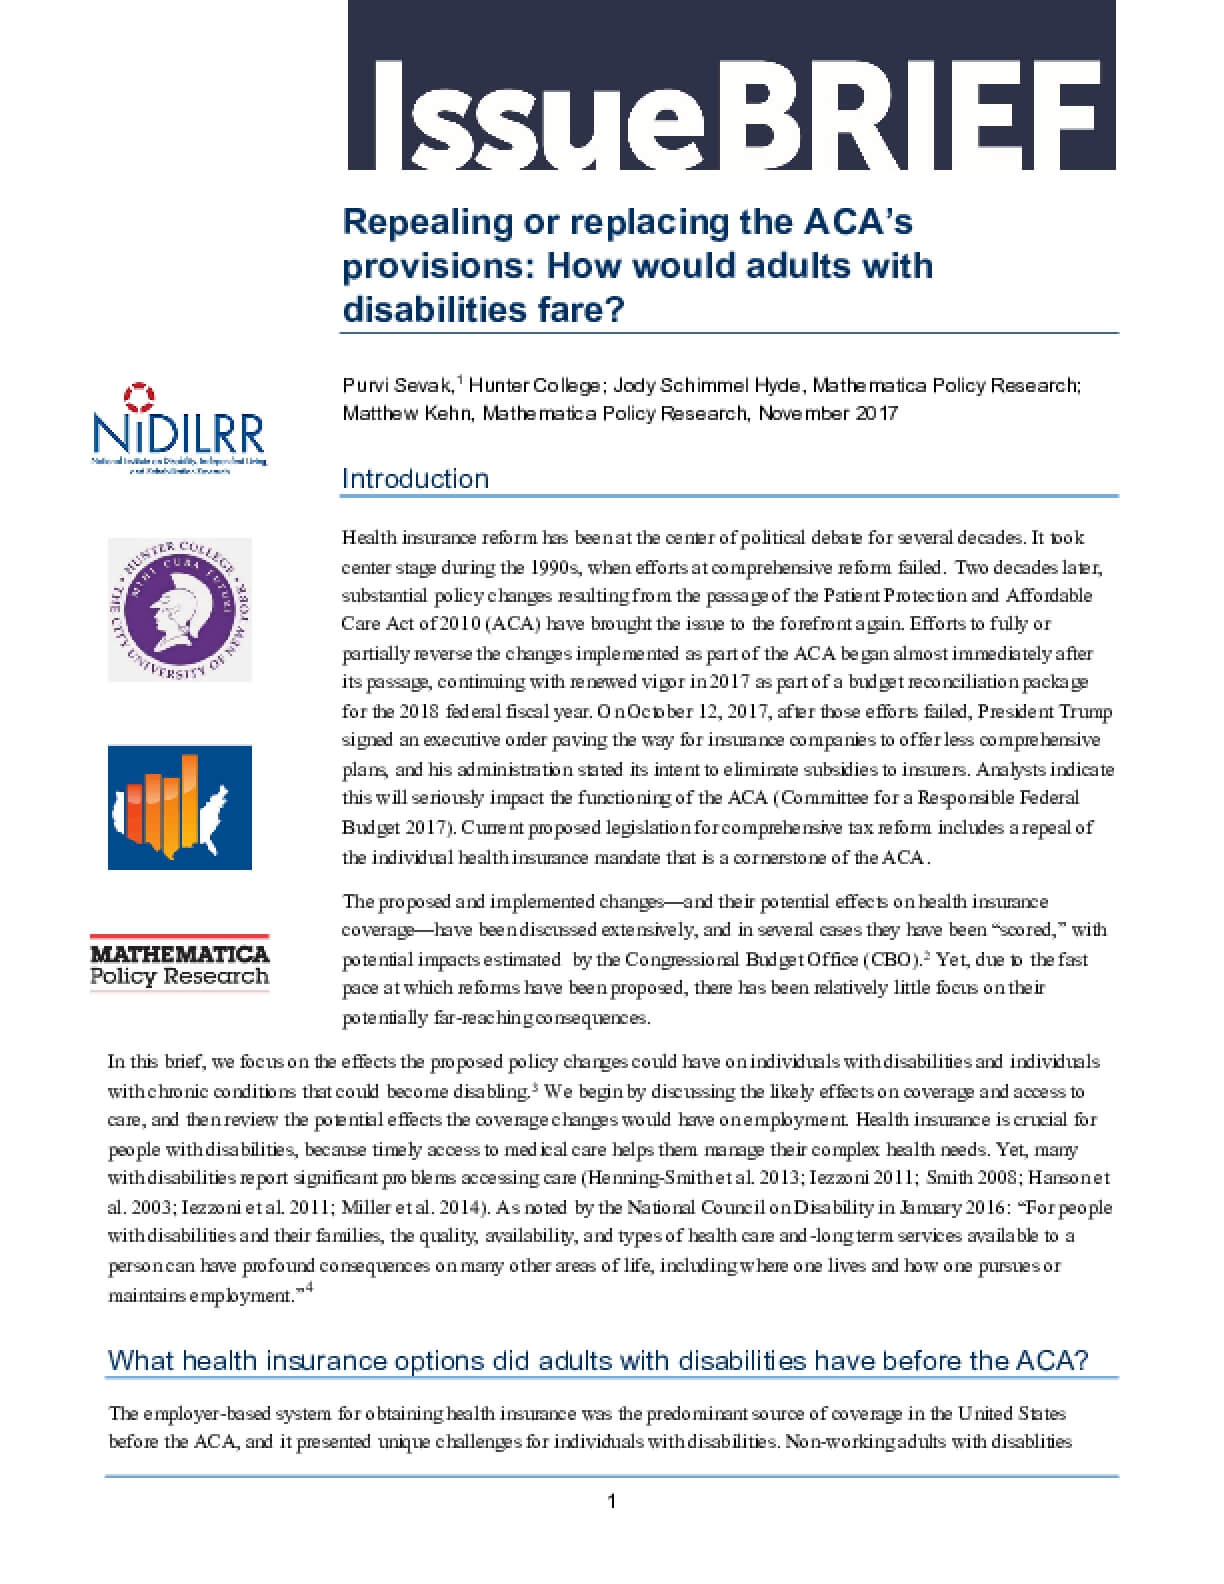 Repealing or Replacing the ACA's Provisions: How Would Adults with Disabilities Fare?